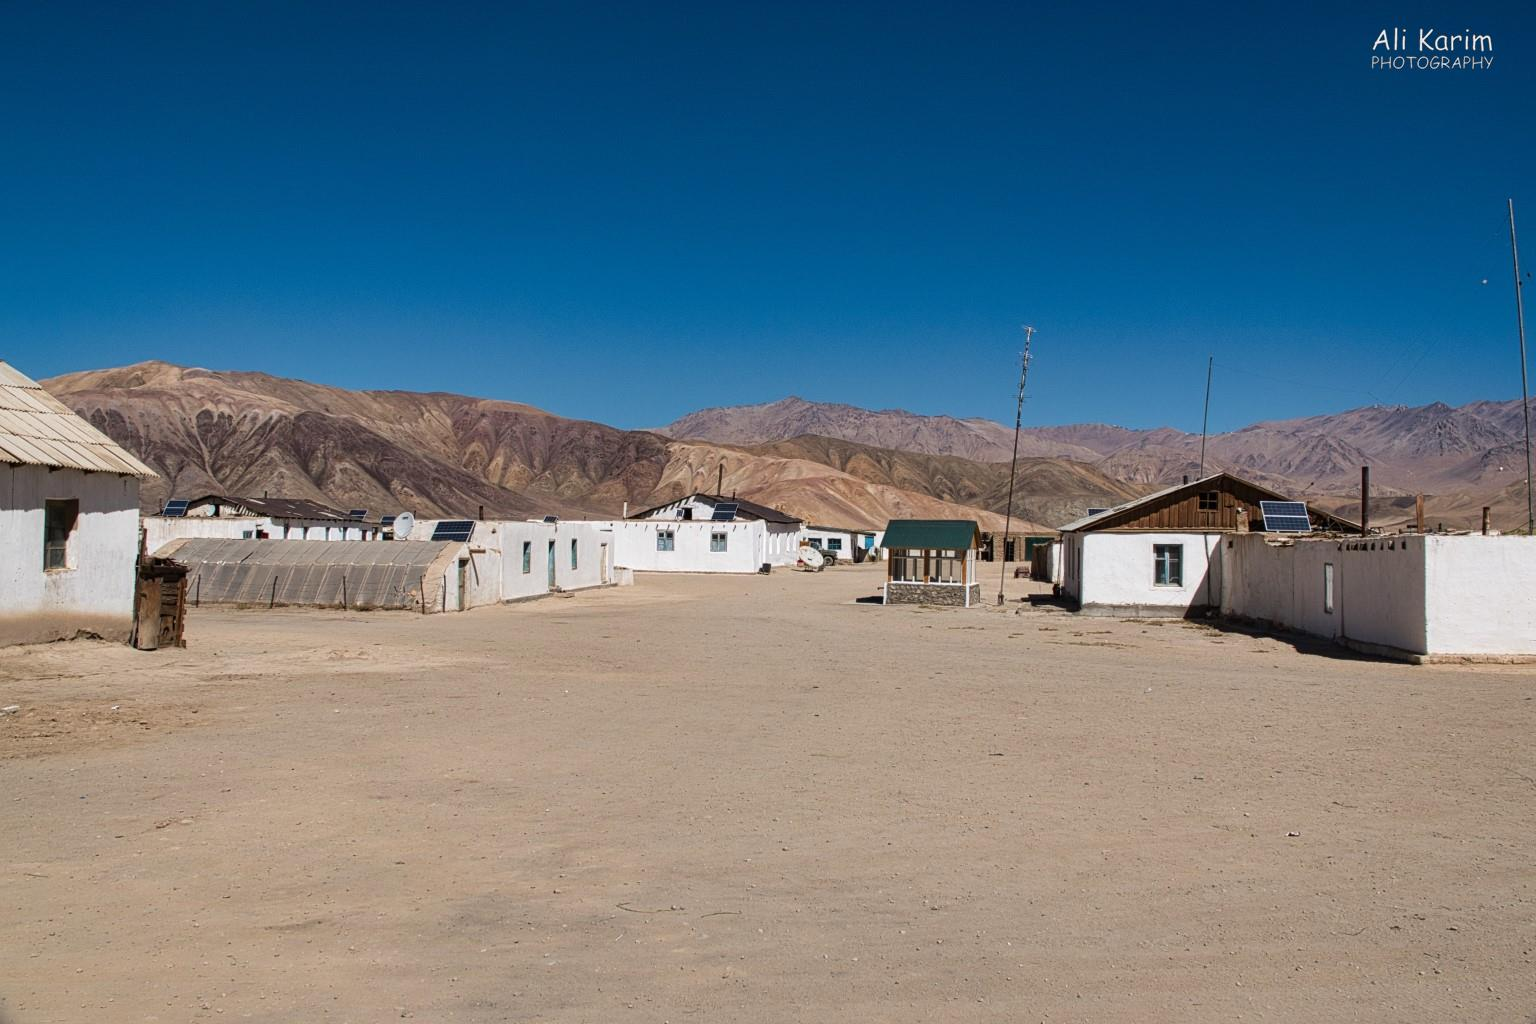 Langar, Tajikistan, The poles used to carry electricity and telephone service, but now are unused.